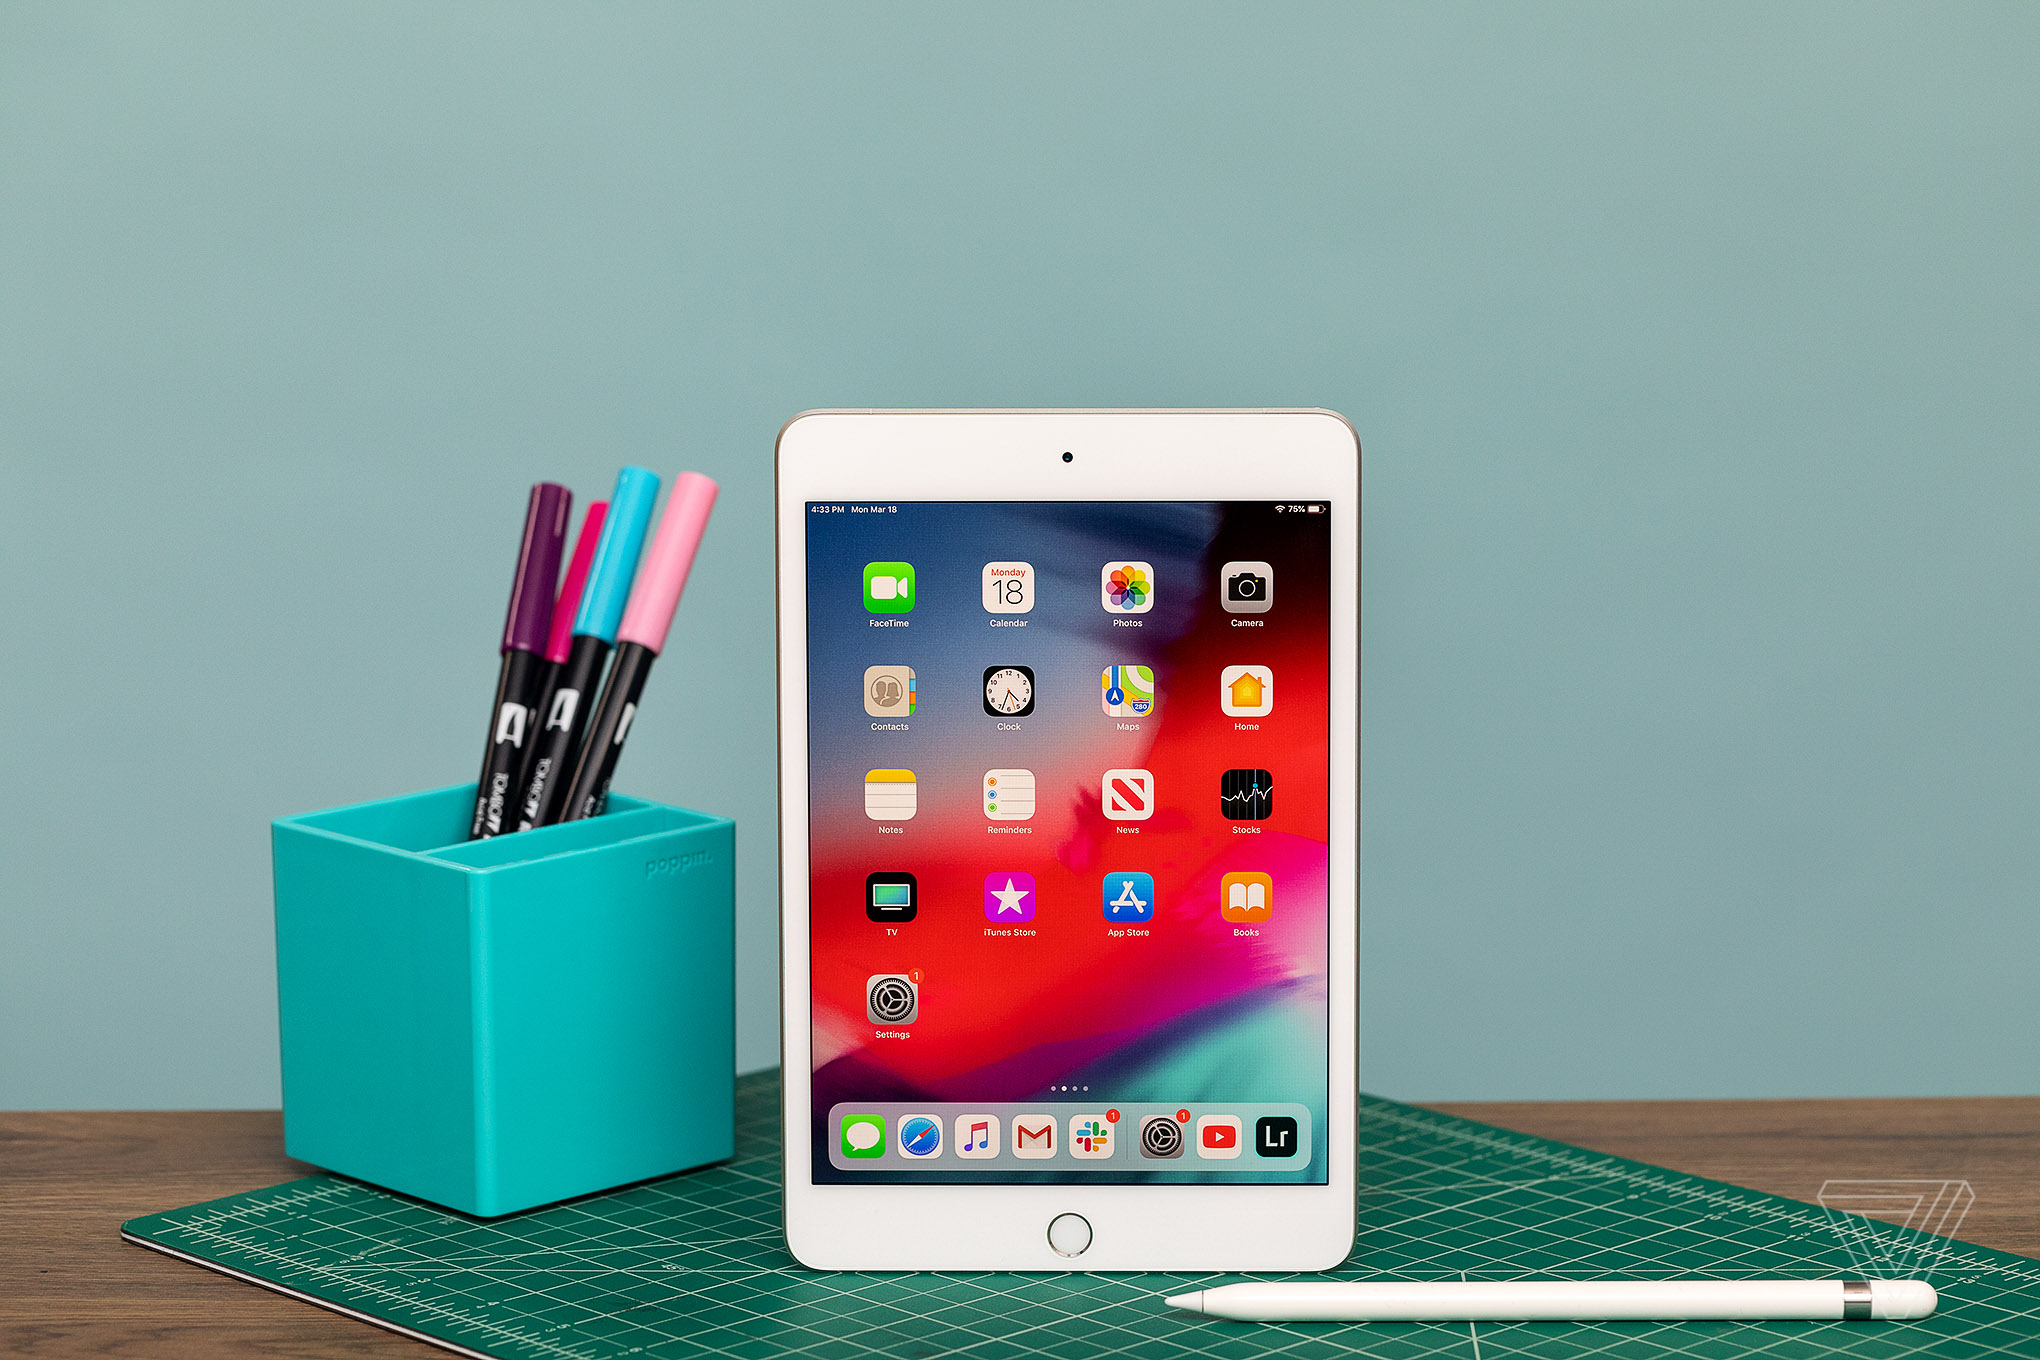 Apple iPad mini 2019 review: no competition - The Verge